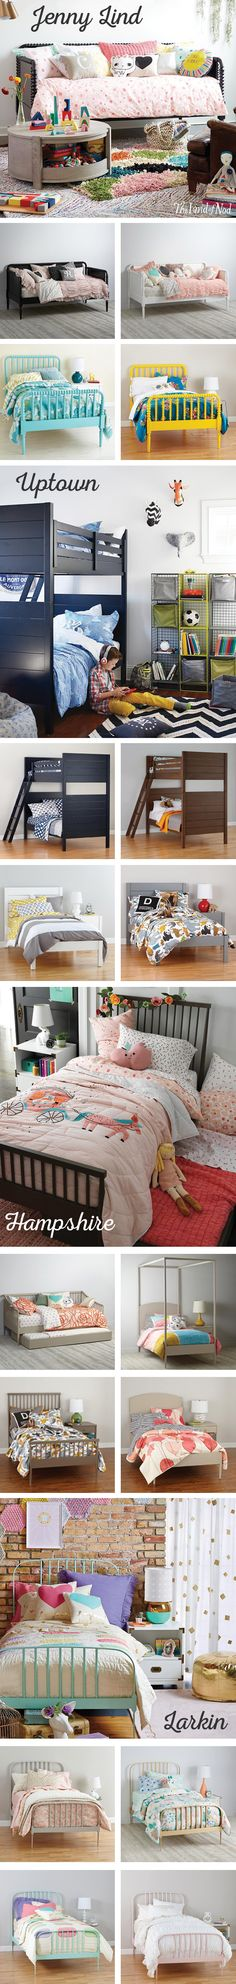 We all know that youngsters need to get a good night's sleep. And thanks to our collection of kids beds, they'll get just that. If you're looking for kids bedroom furniture that's made to last, The Land of Nod has everything you need for a cozy (yet durable) nest. From a twin and full to bunk beds and daybeds, there's a size and style to suit every bedroom design. Now, making the bed is another story.